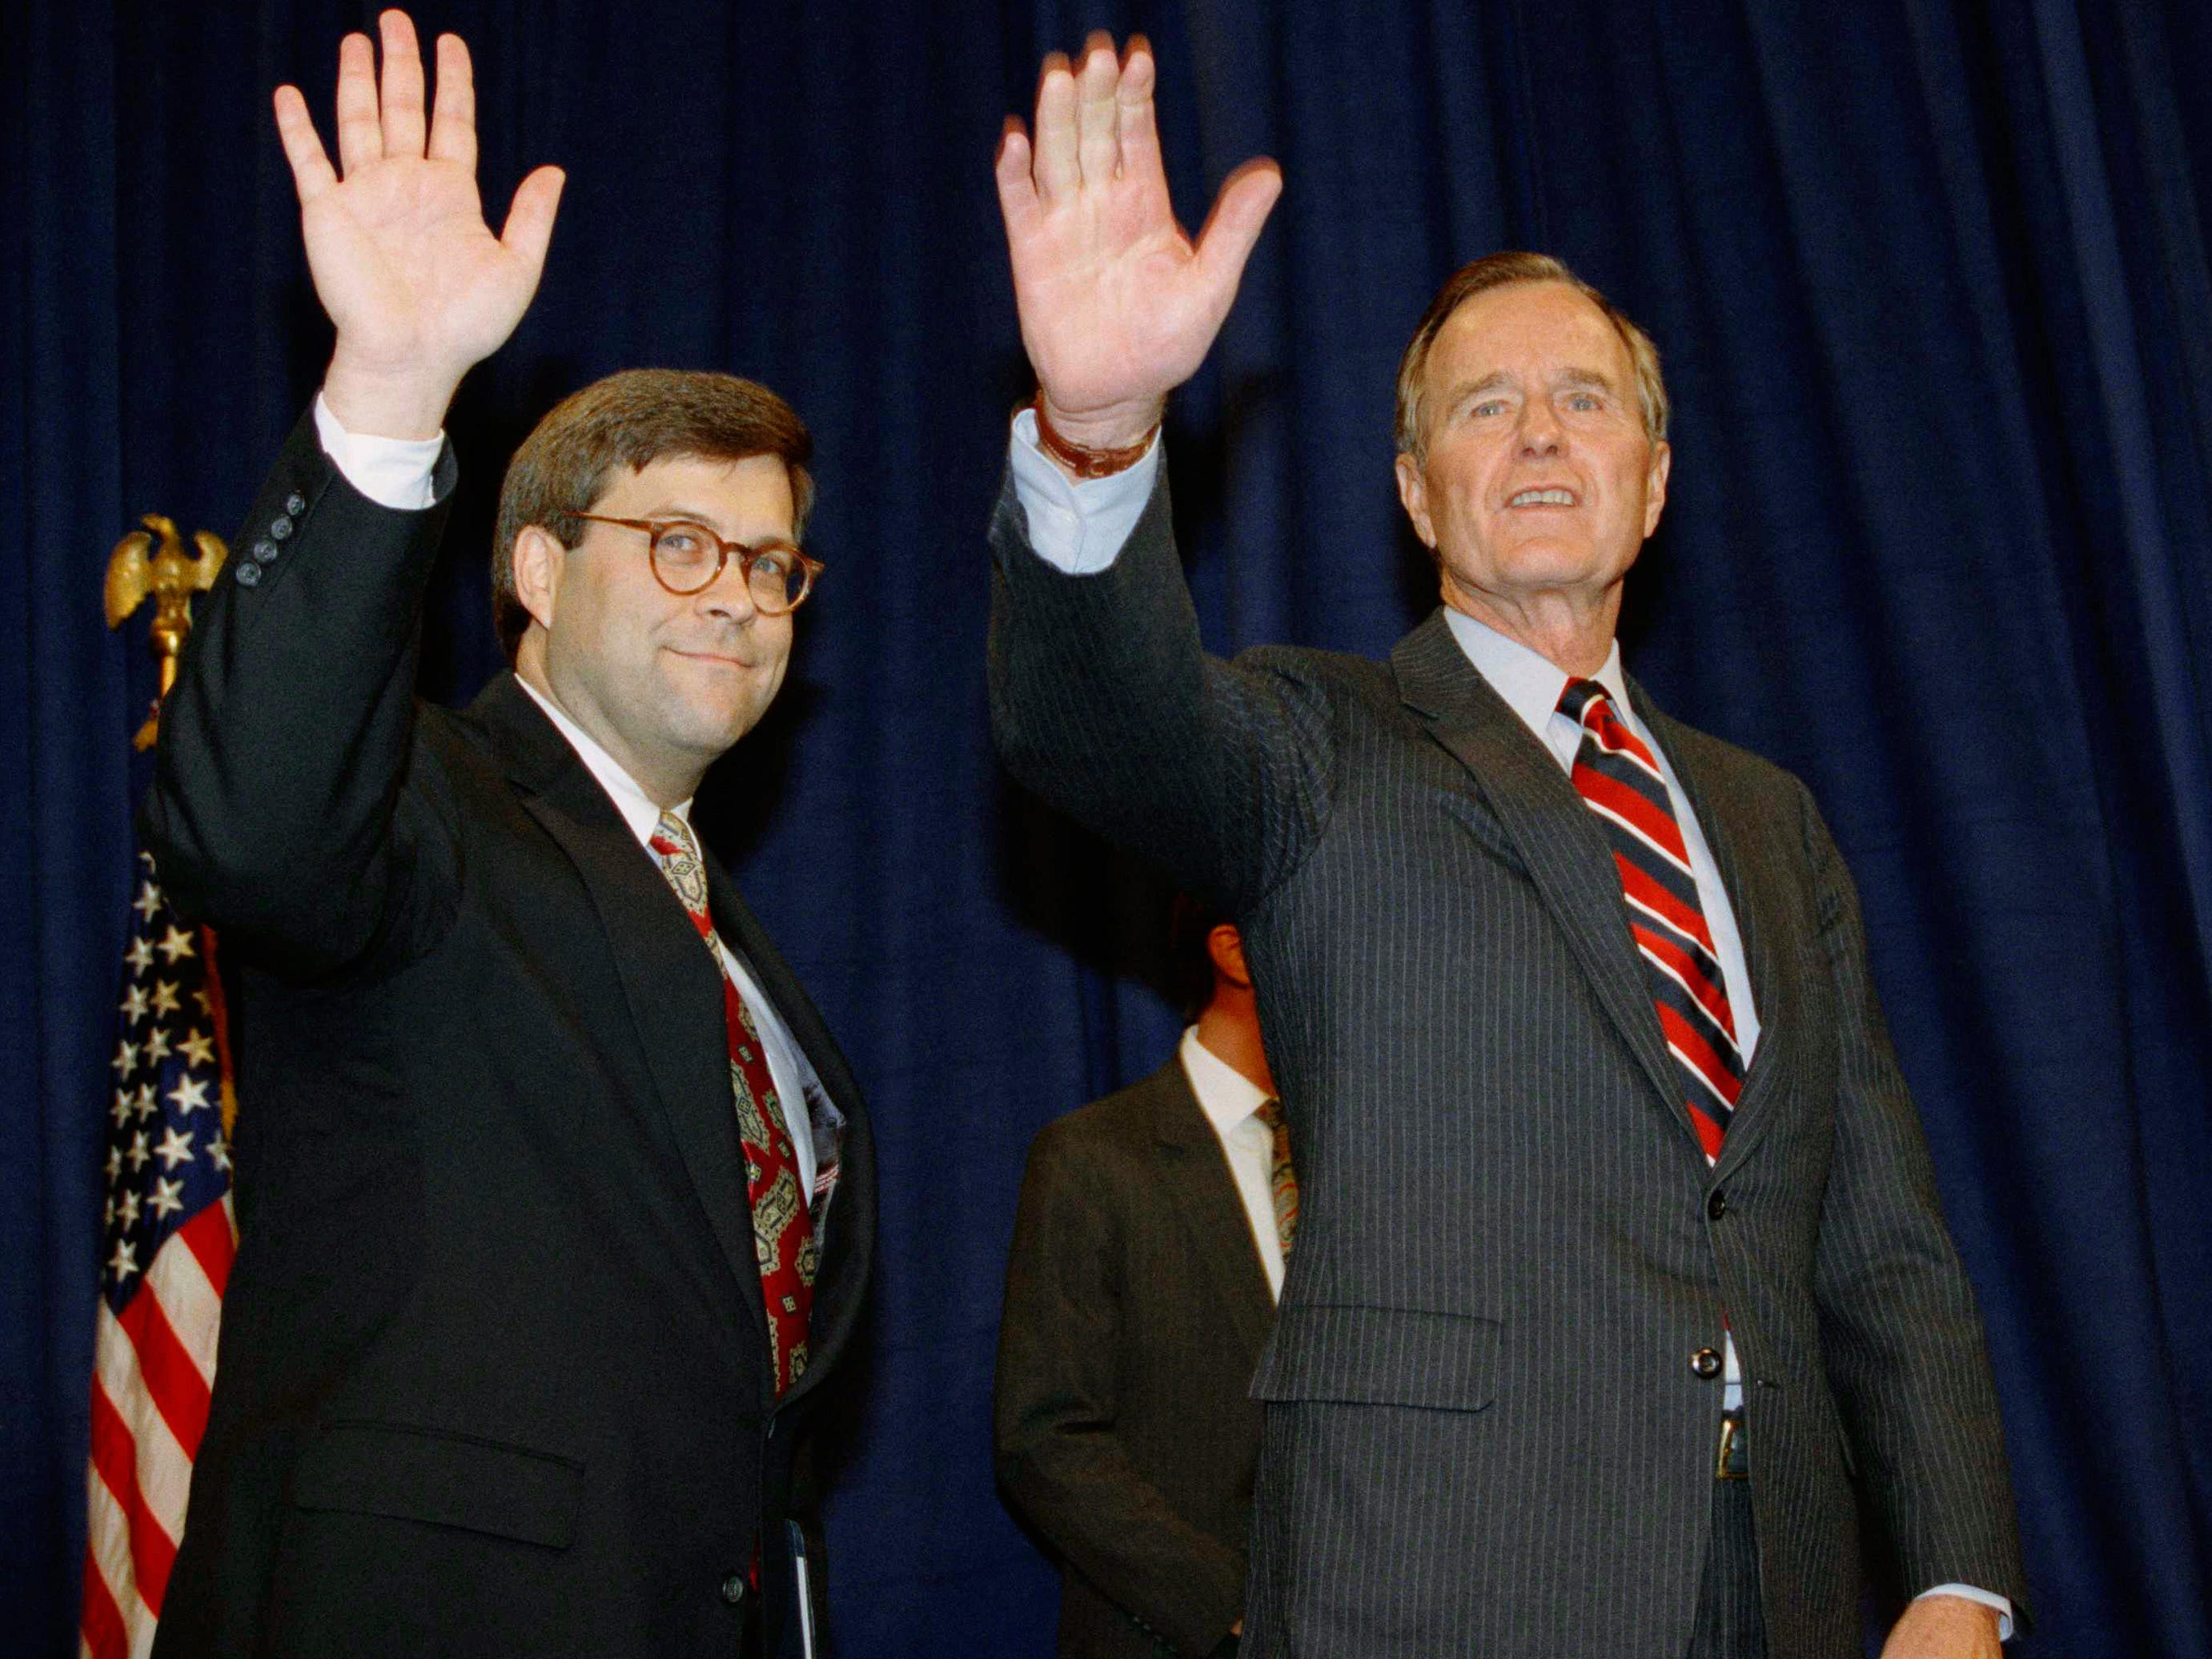 FILE - In this Nov. 26, 1991, file photo, President George H.W Bush, right, and William Barr wave after Barr was sworn in as the new Attorney General of the United States at a Justice Department ceremony in Washington. Barr, who served as attorney general under Bush, has emerged as a top contender for that job in President Donald Trump's Cabinet, two people familiar with the president's selection process said Thursday, Dec. 6, 2018. (AP Photo/Scott Applewhite, File) ORG XMIT: NYHK405